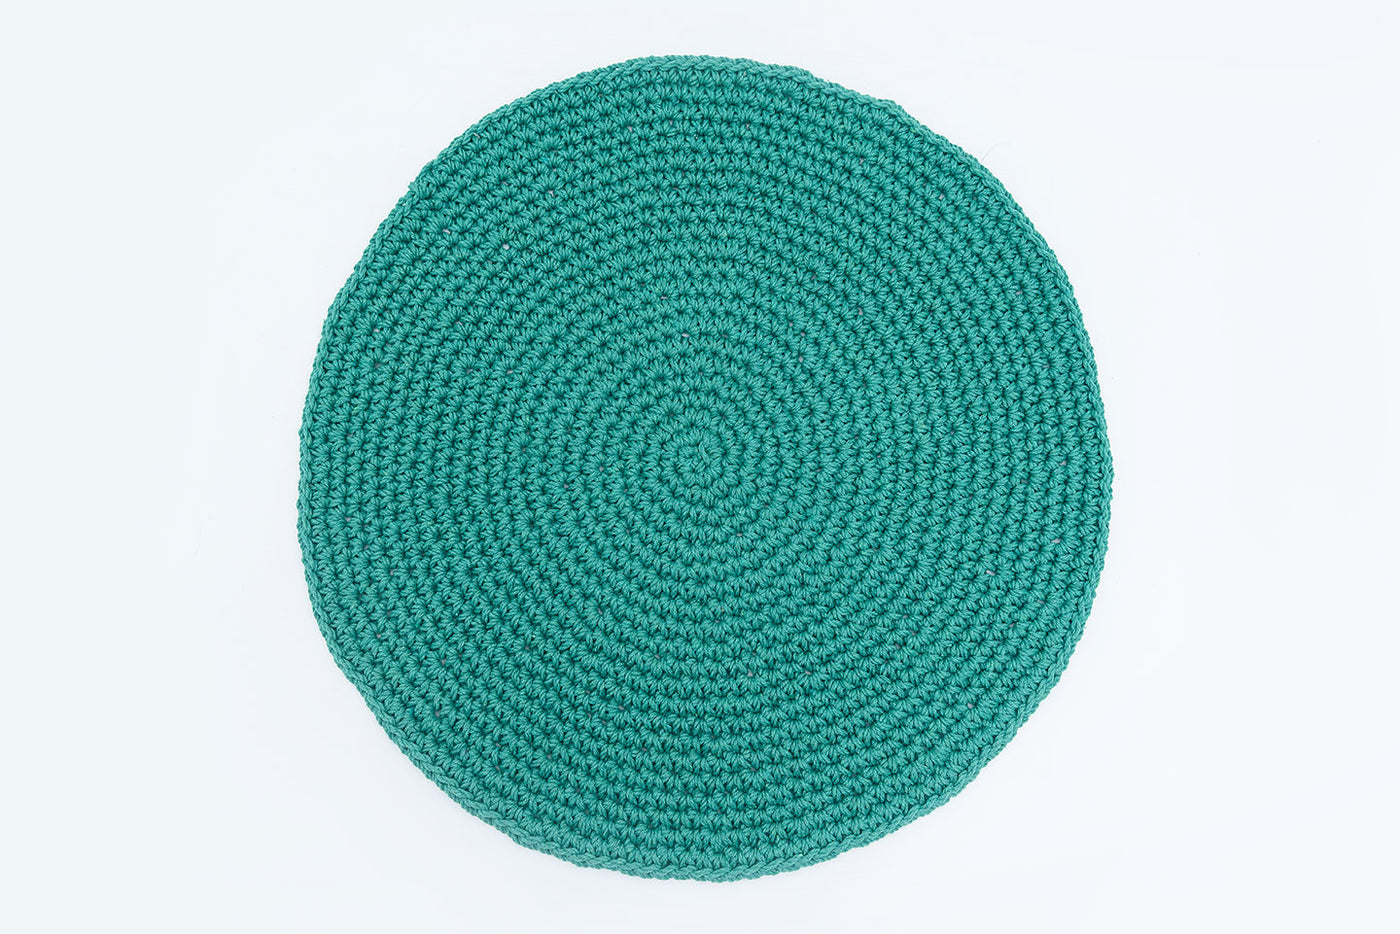 Teal Green Cotton Placemats (Set of 4 or 6) - Round